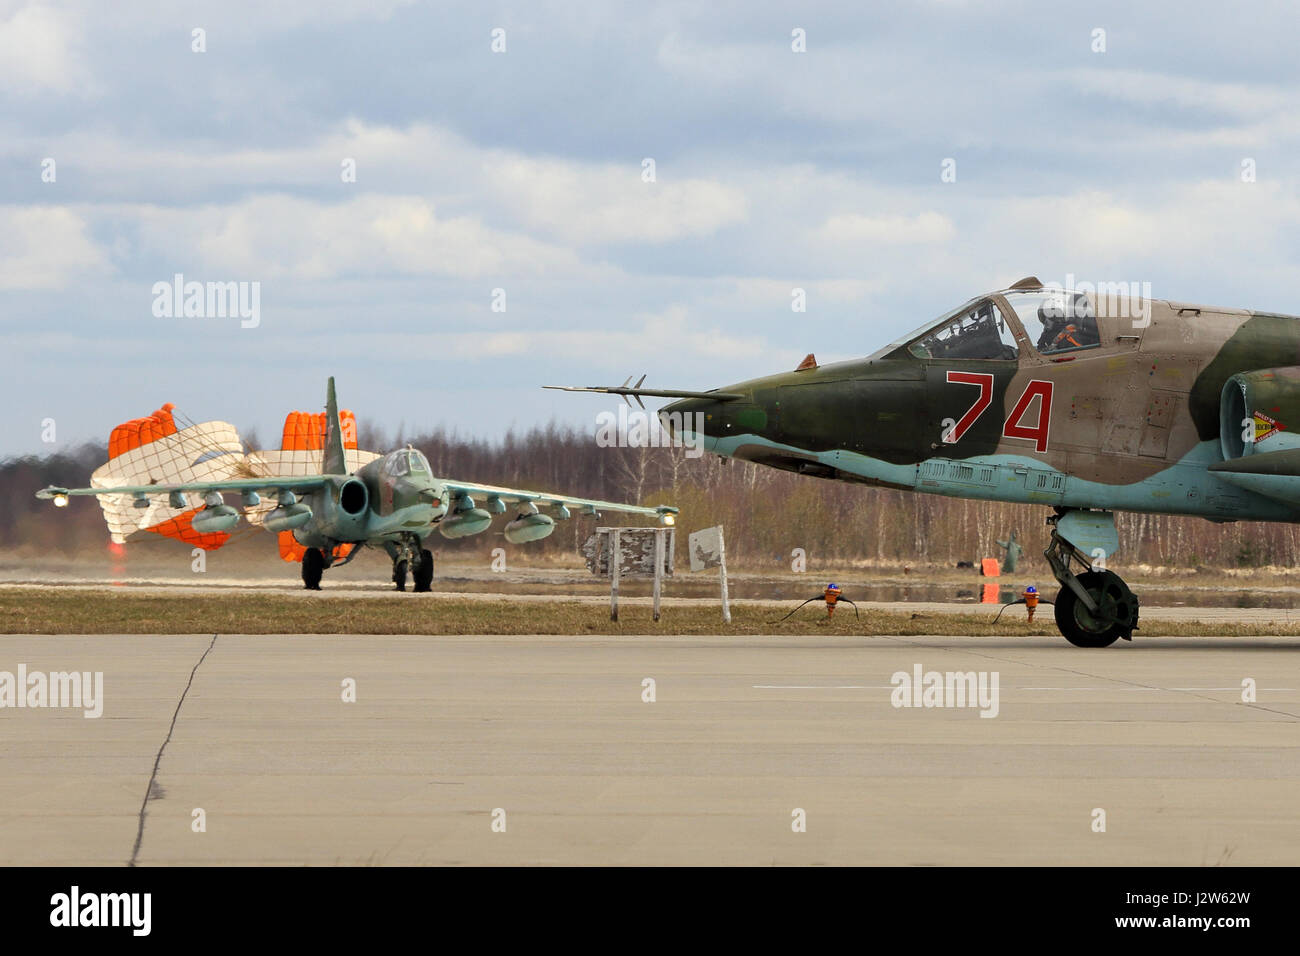 Kubinka military airfield in the Moscow region: how to get there 81